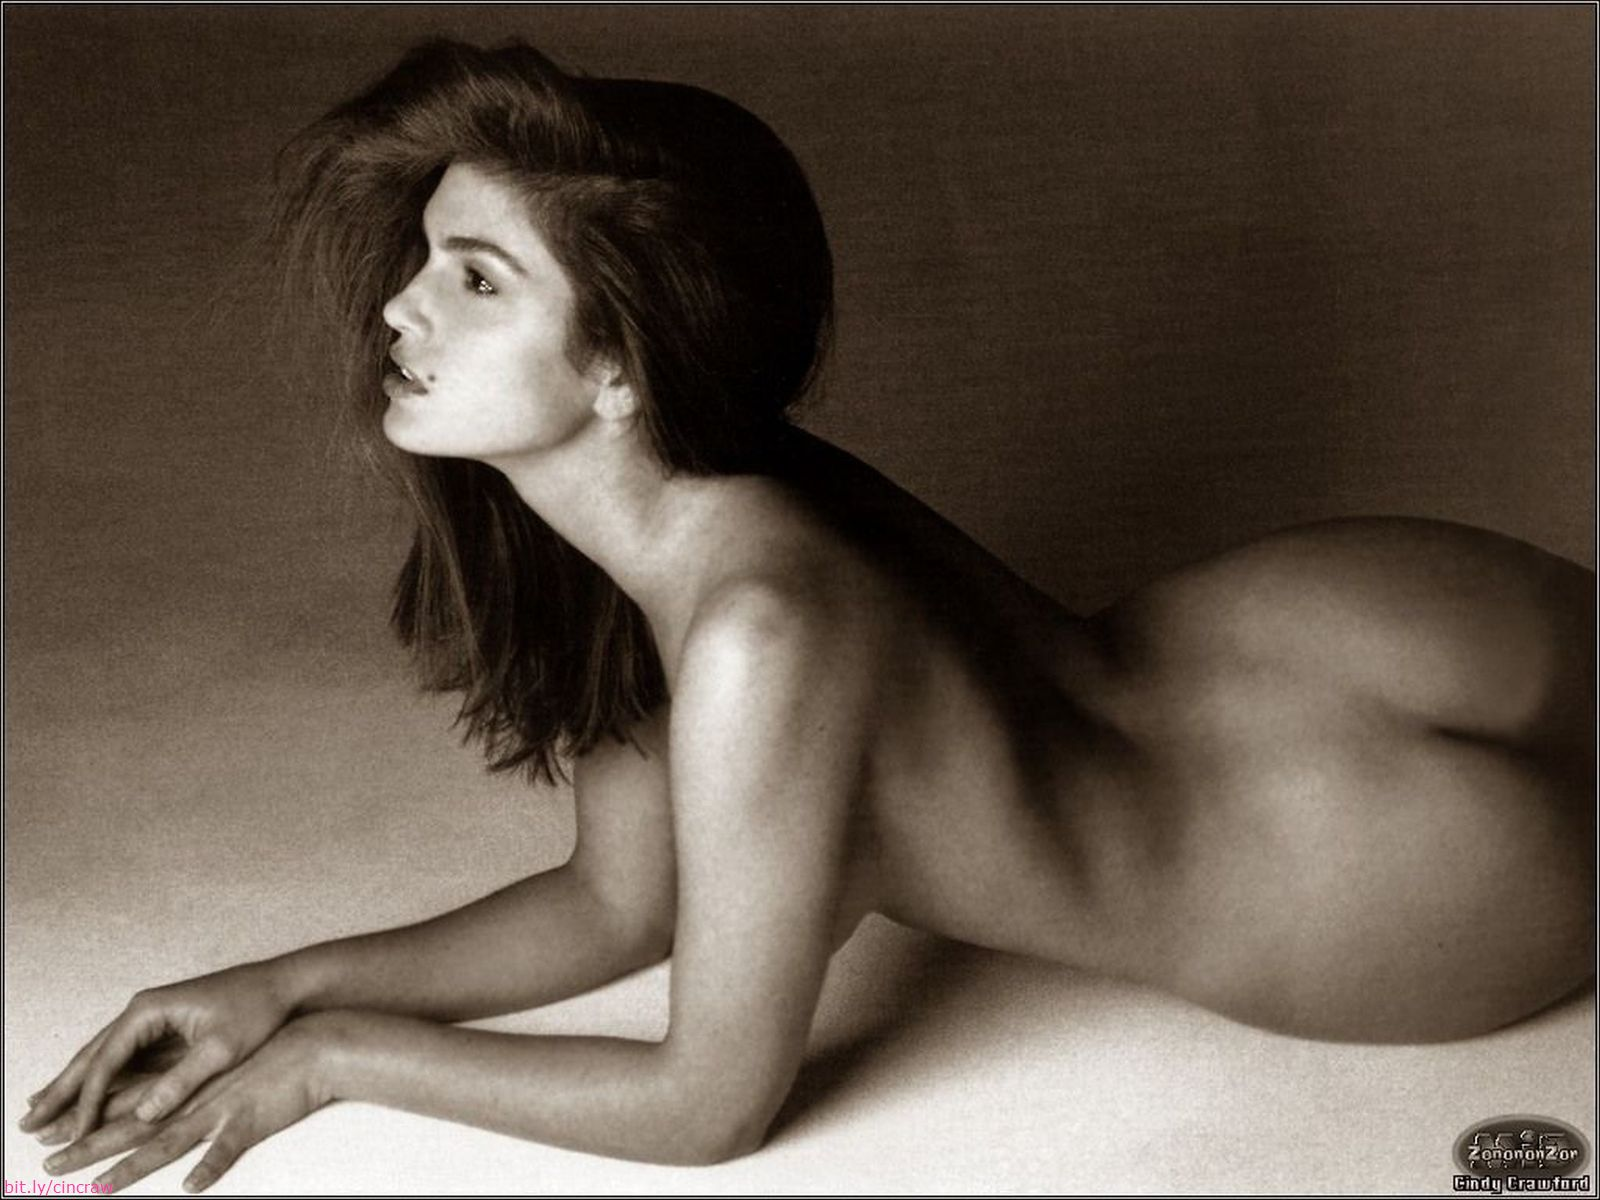 Not see Cindy crawford naked matchless theme